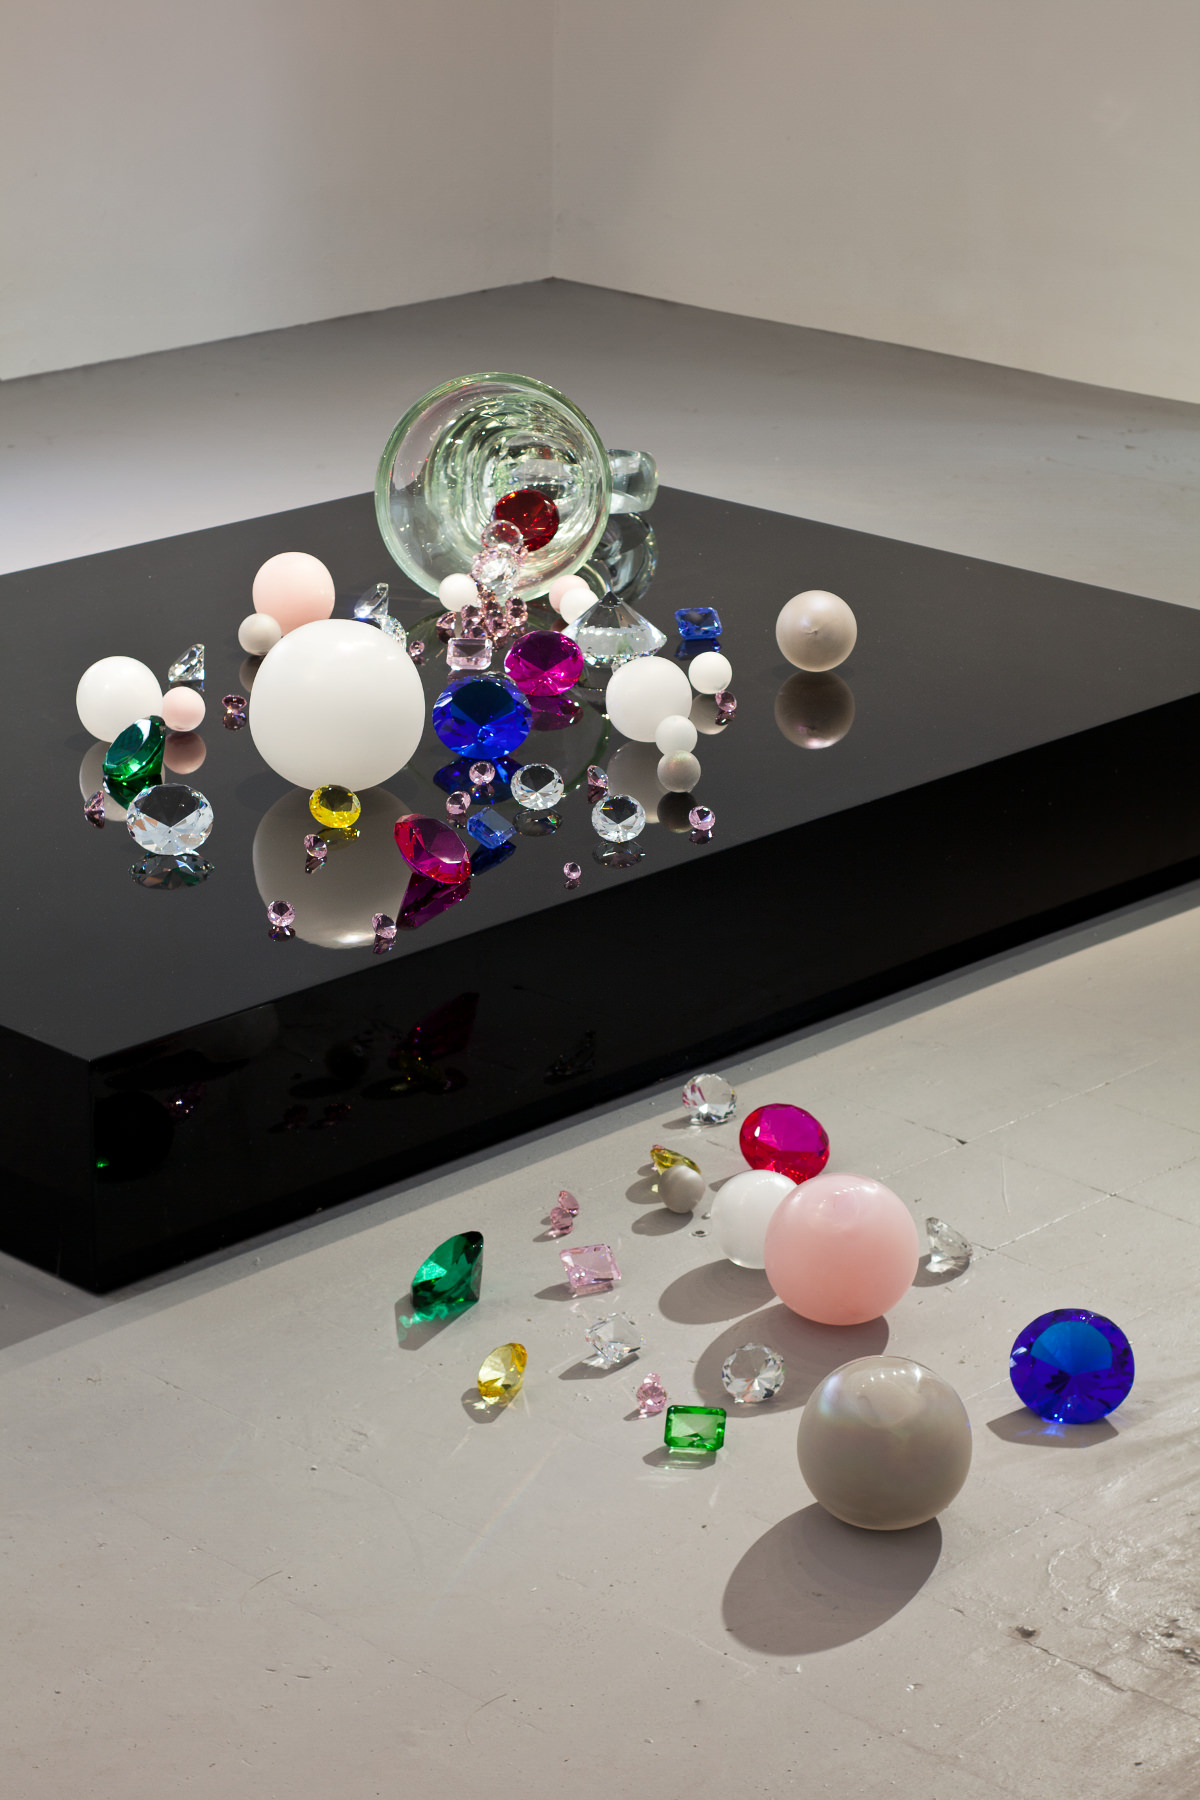 Atelier Ted Noten - If You Want to Be Beautiful You Have to Suffer